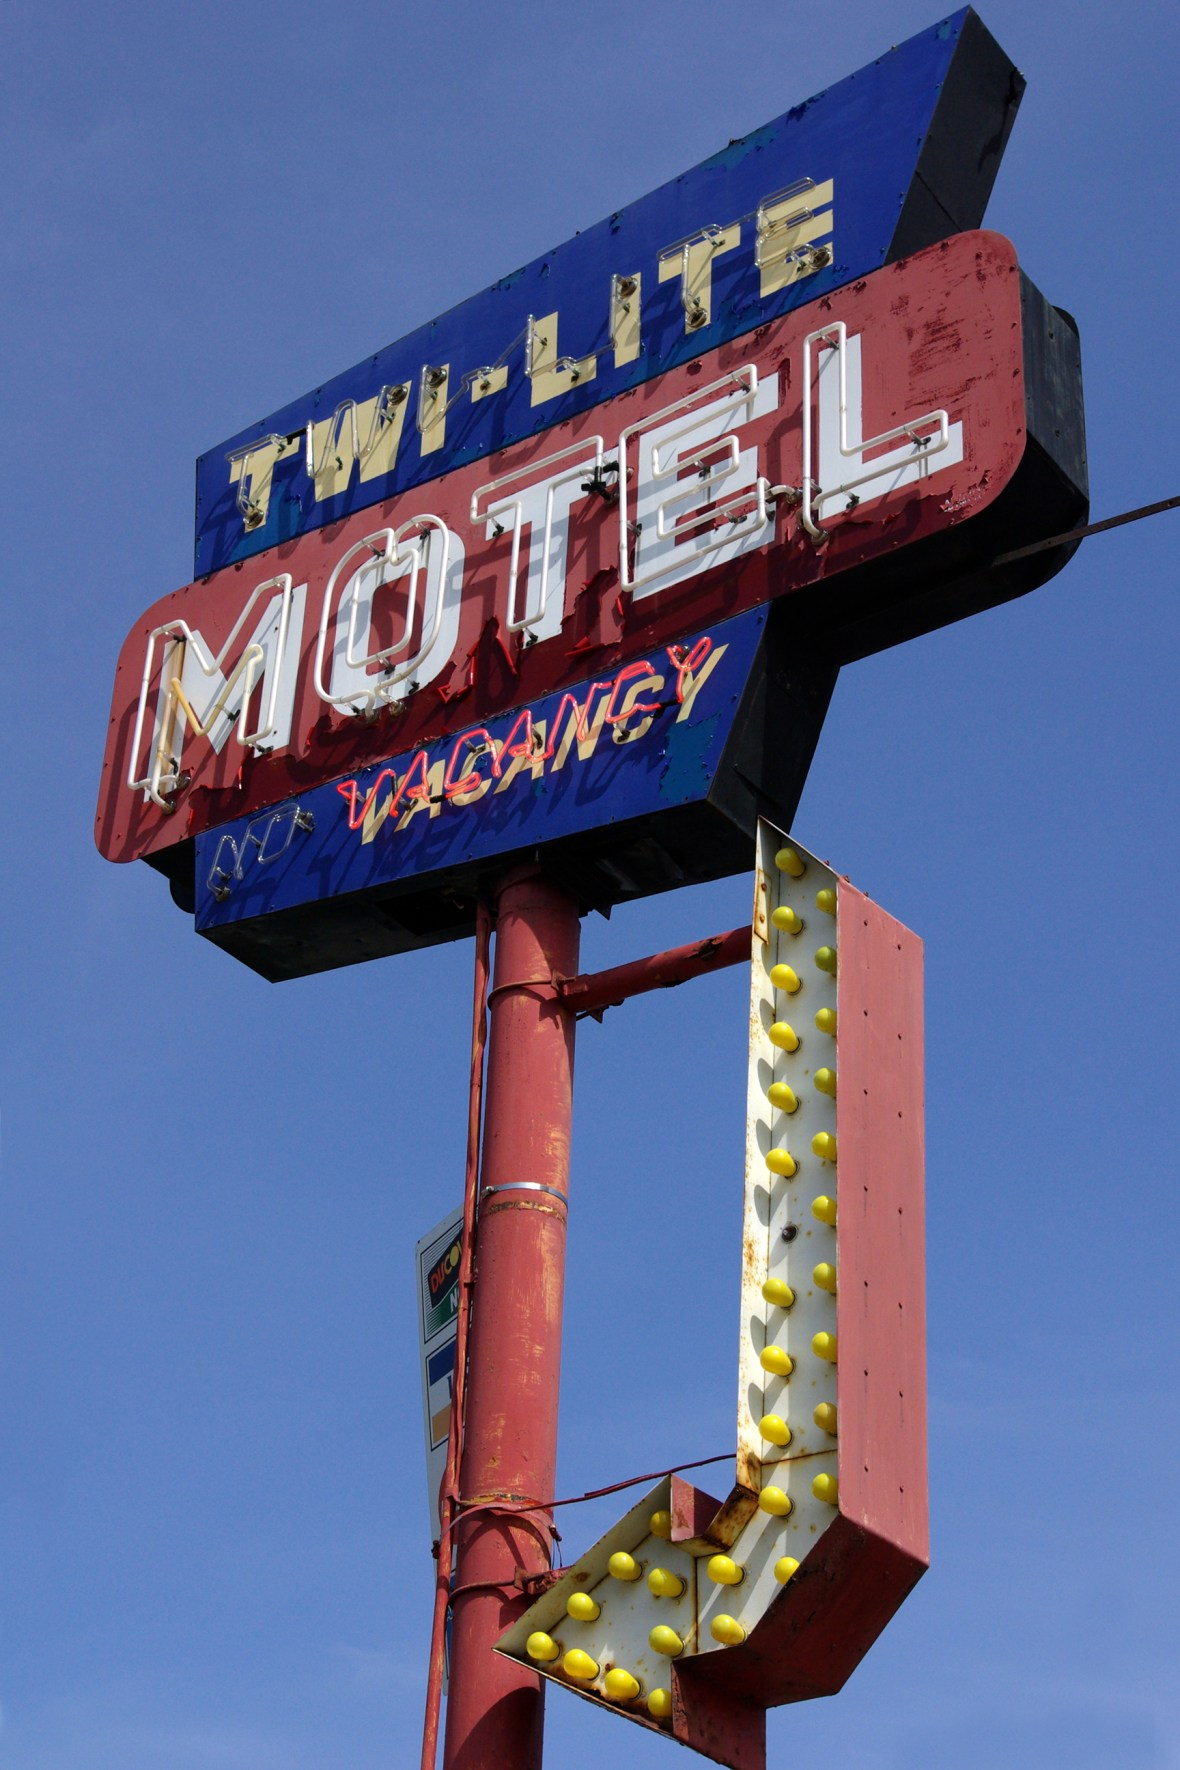 Twi-Lite Motel - 111 Wisconsin Dells Parkway South, Wisconsin Dells, Wisconsin U.S.A. - April 5, 2008